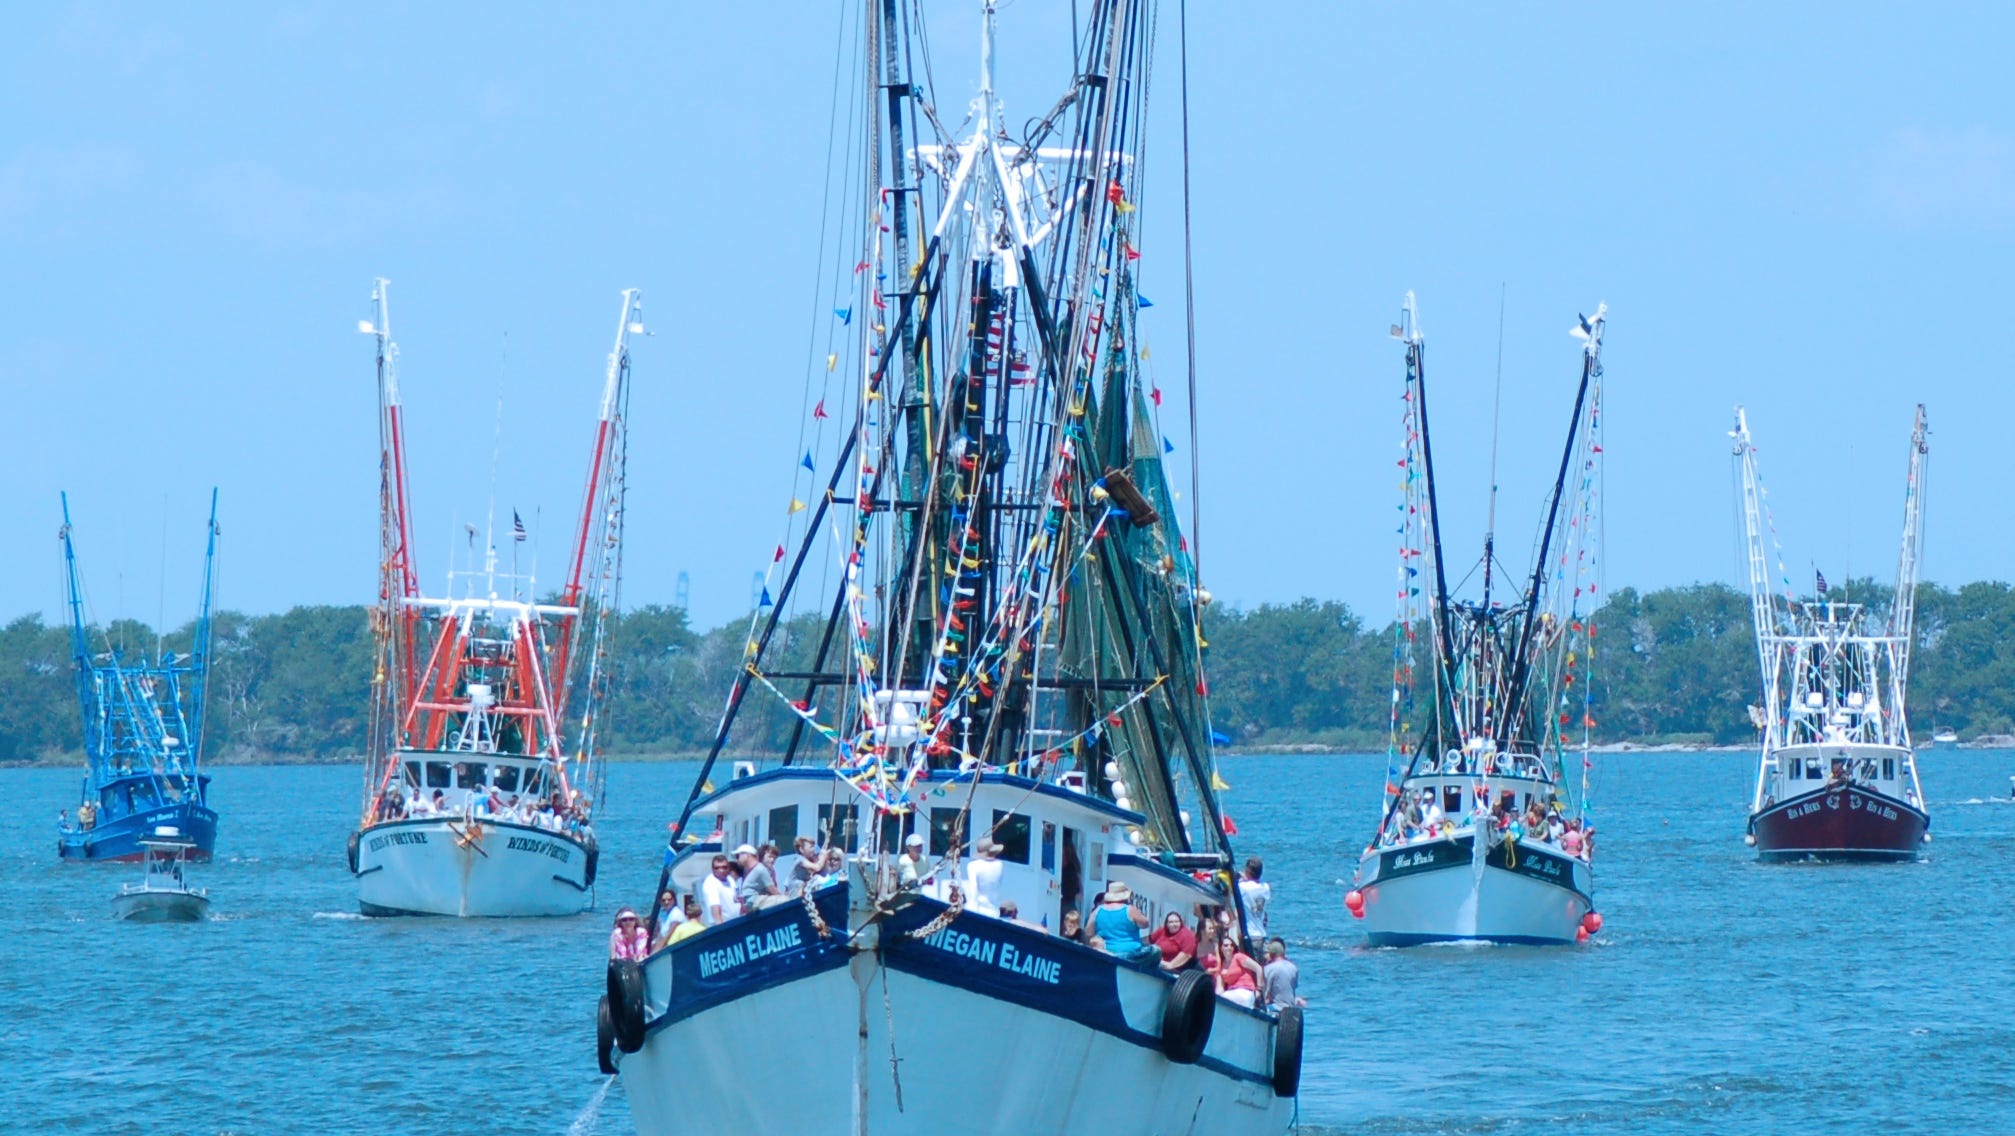 WHAT: Blessing of the Fleet & Seafood Festival